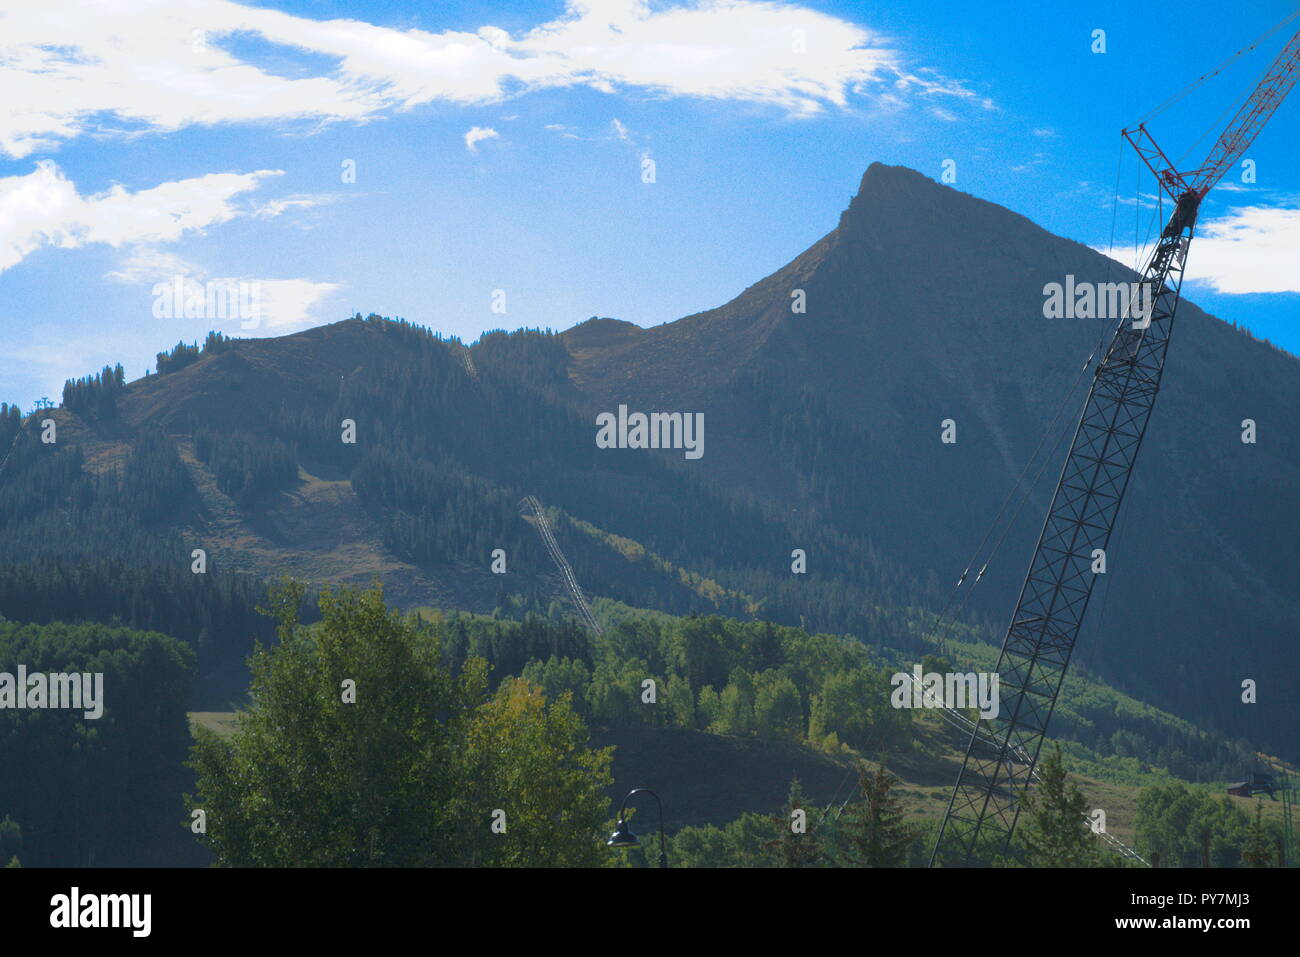 Crested Butte mountain with a crane and some trees in front, with a blue sky and white clouds. - Stock Image